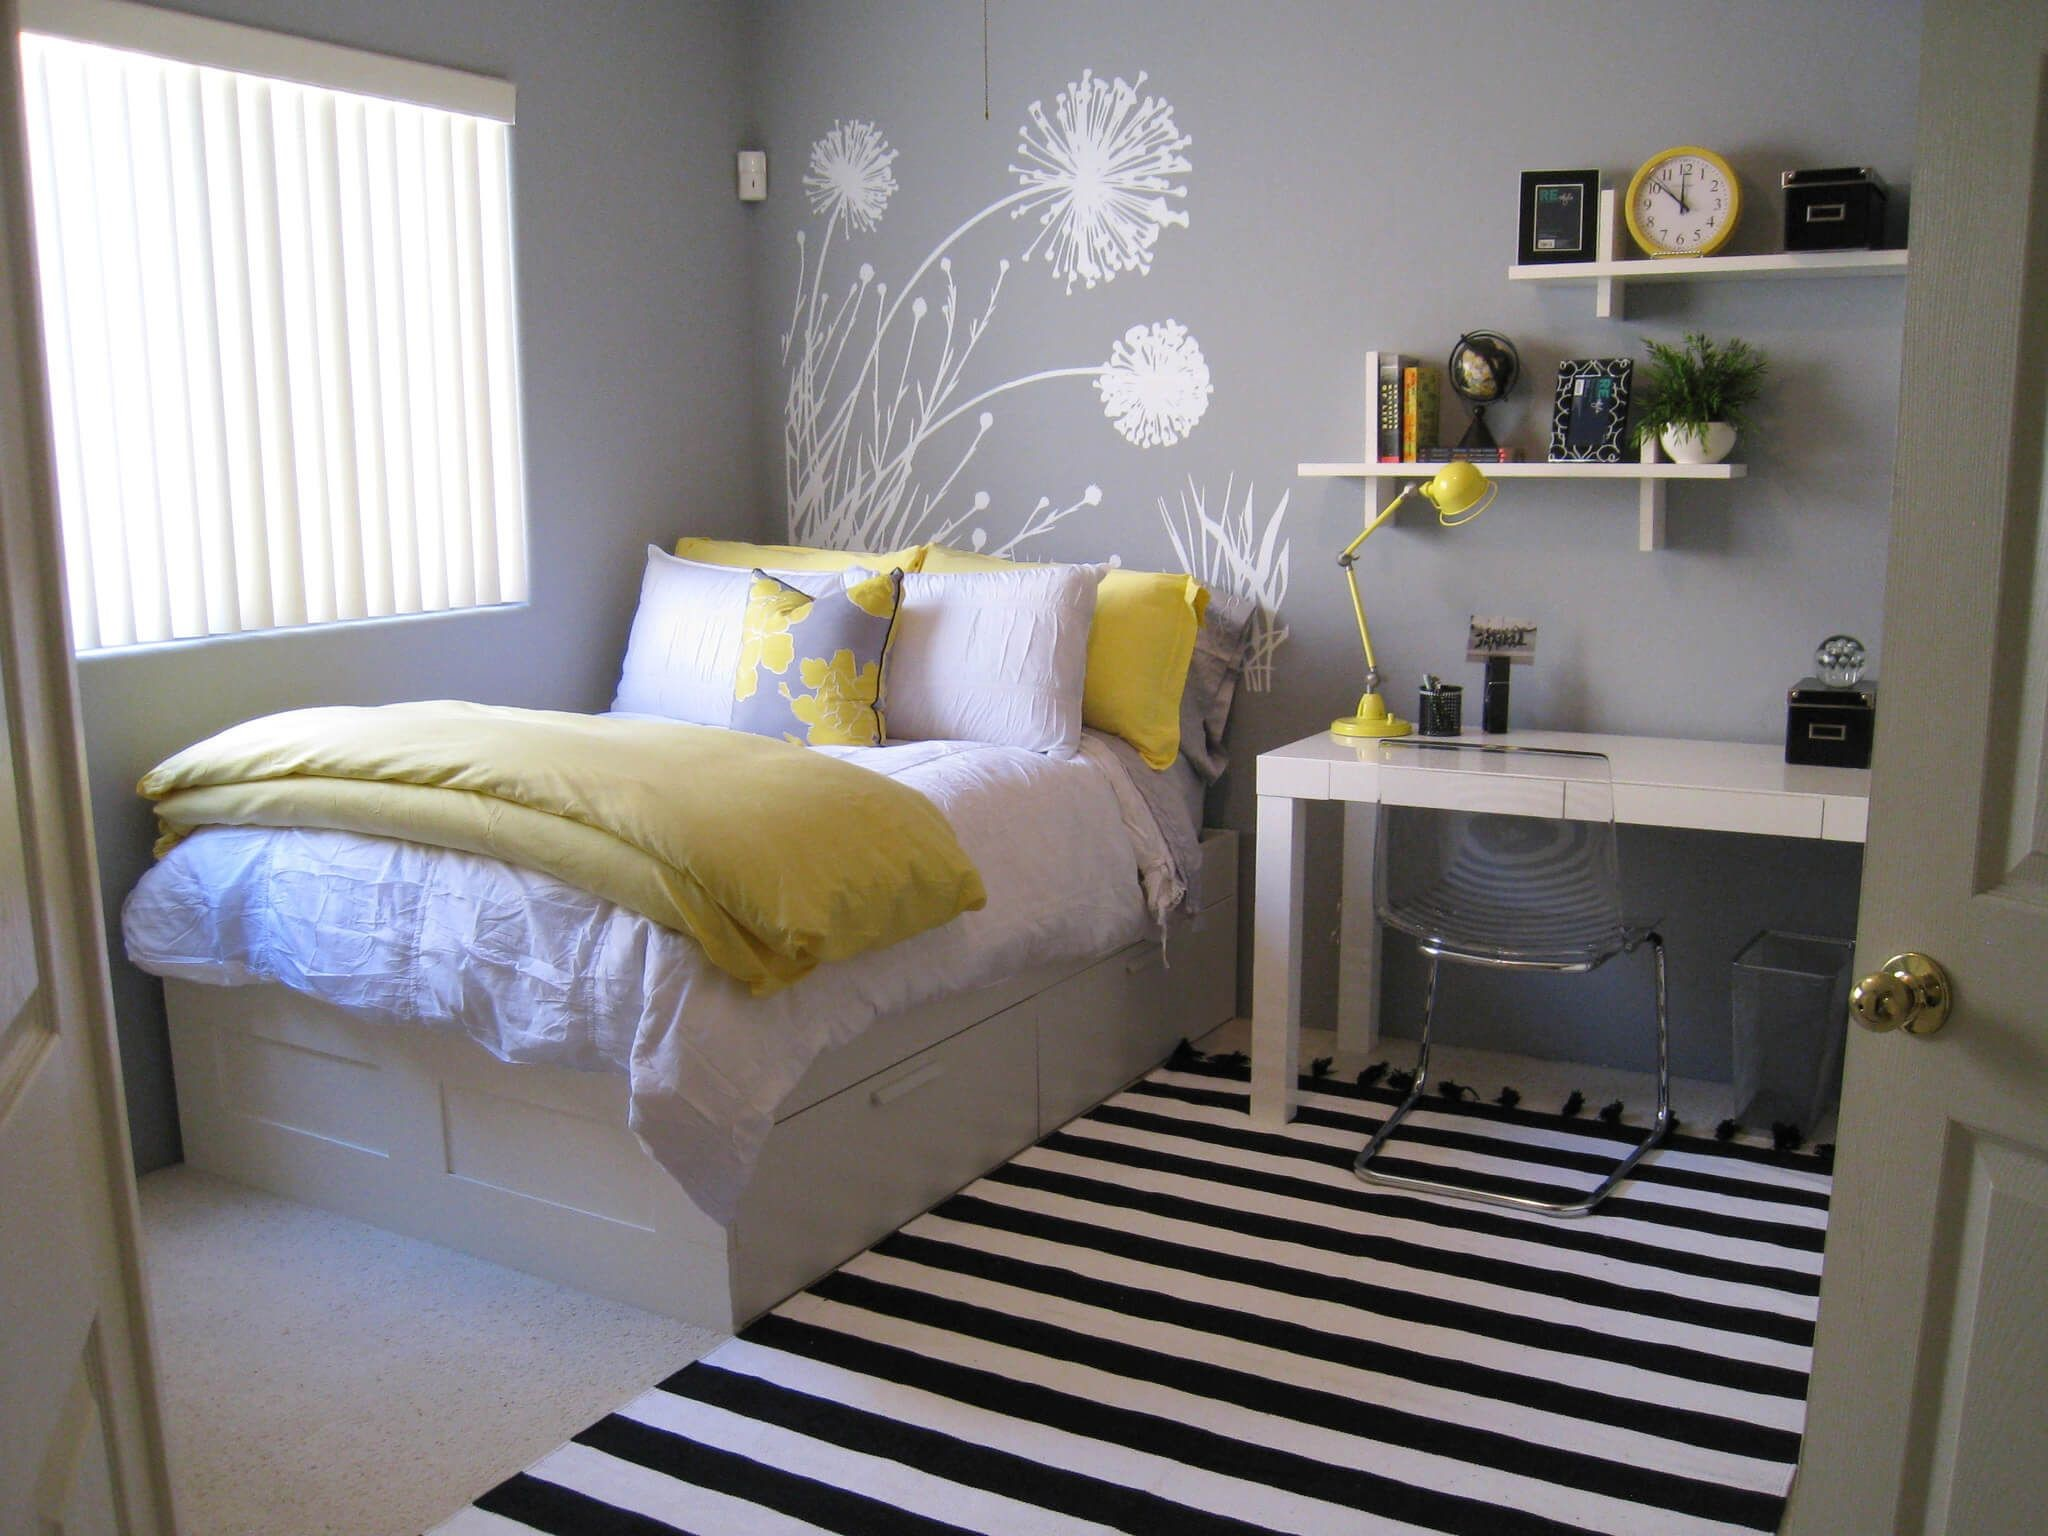 7 Expand Your Small Bedroom Visually Simphome com